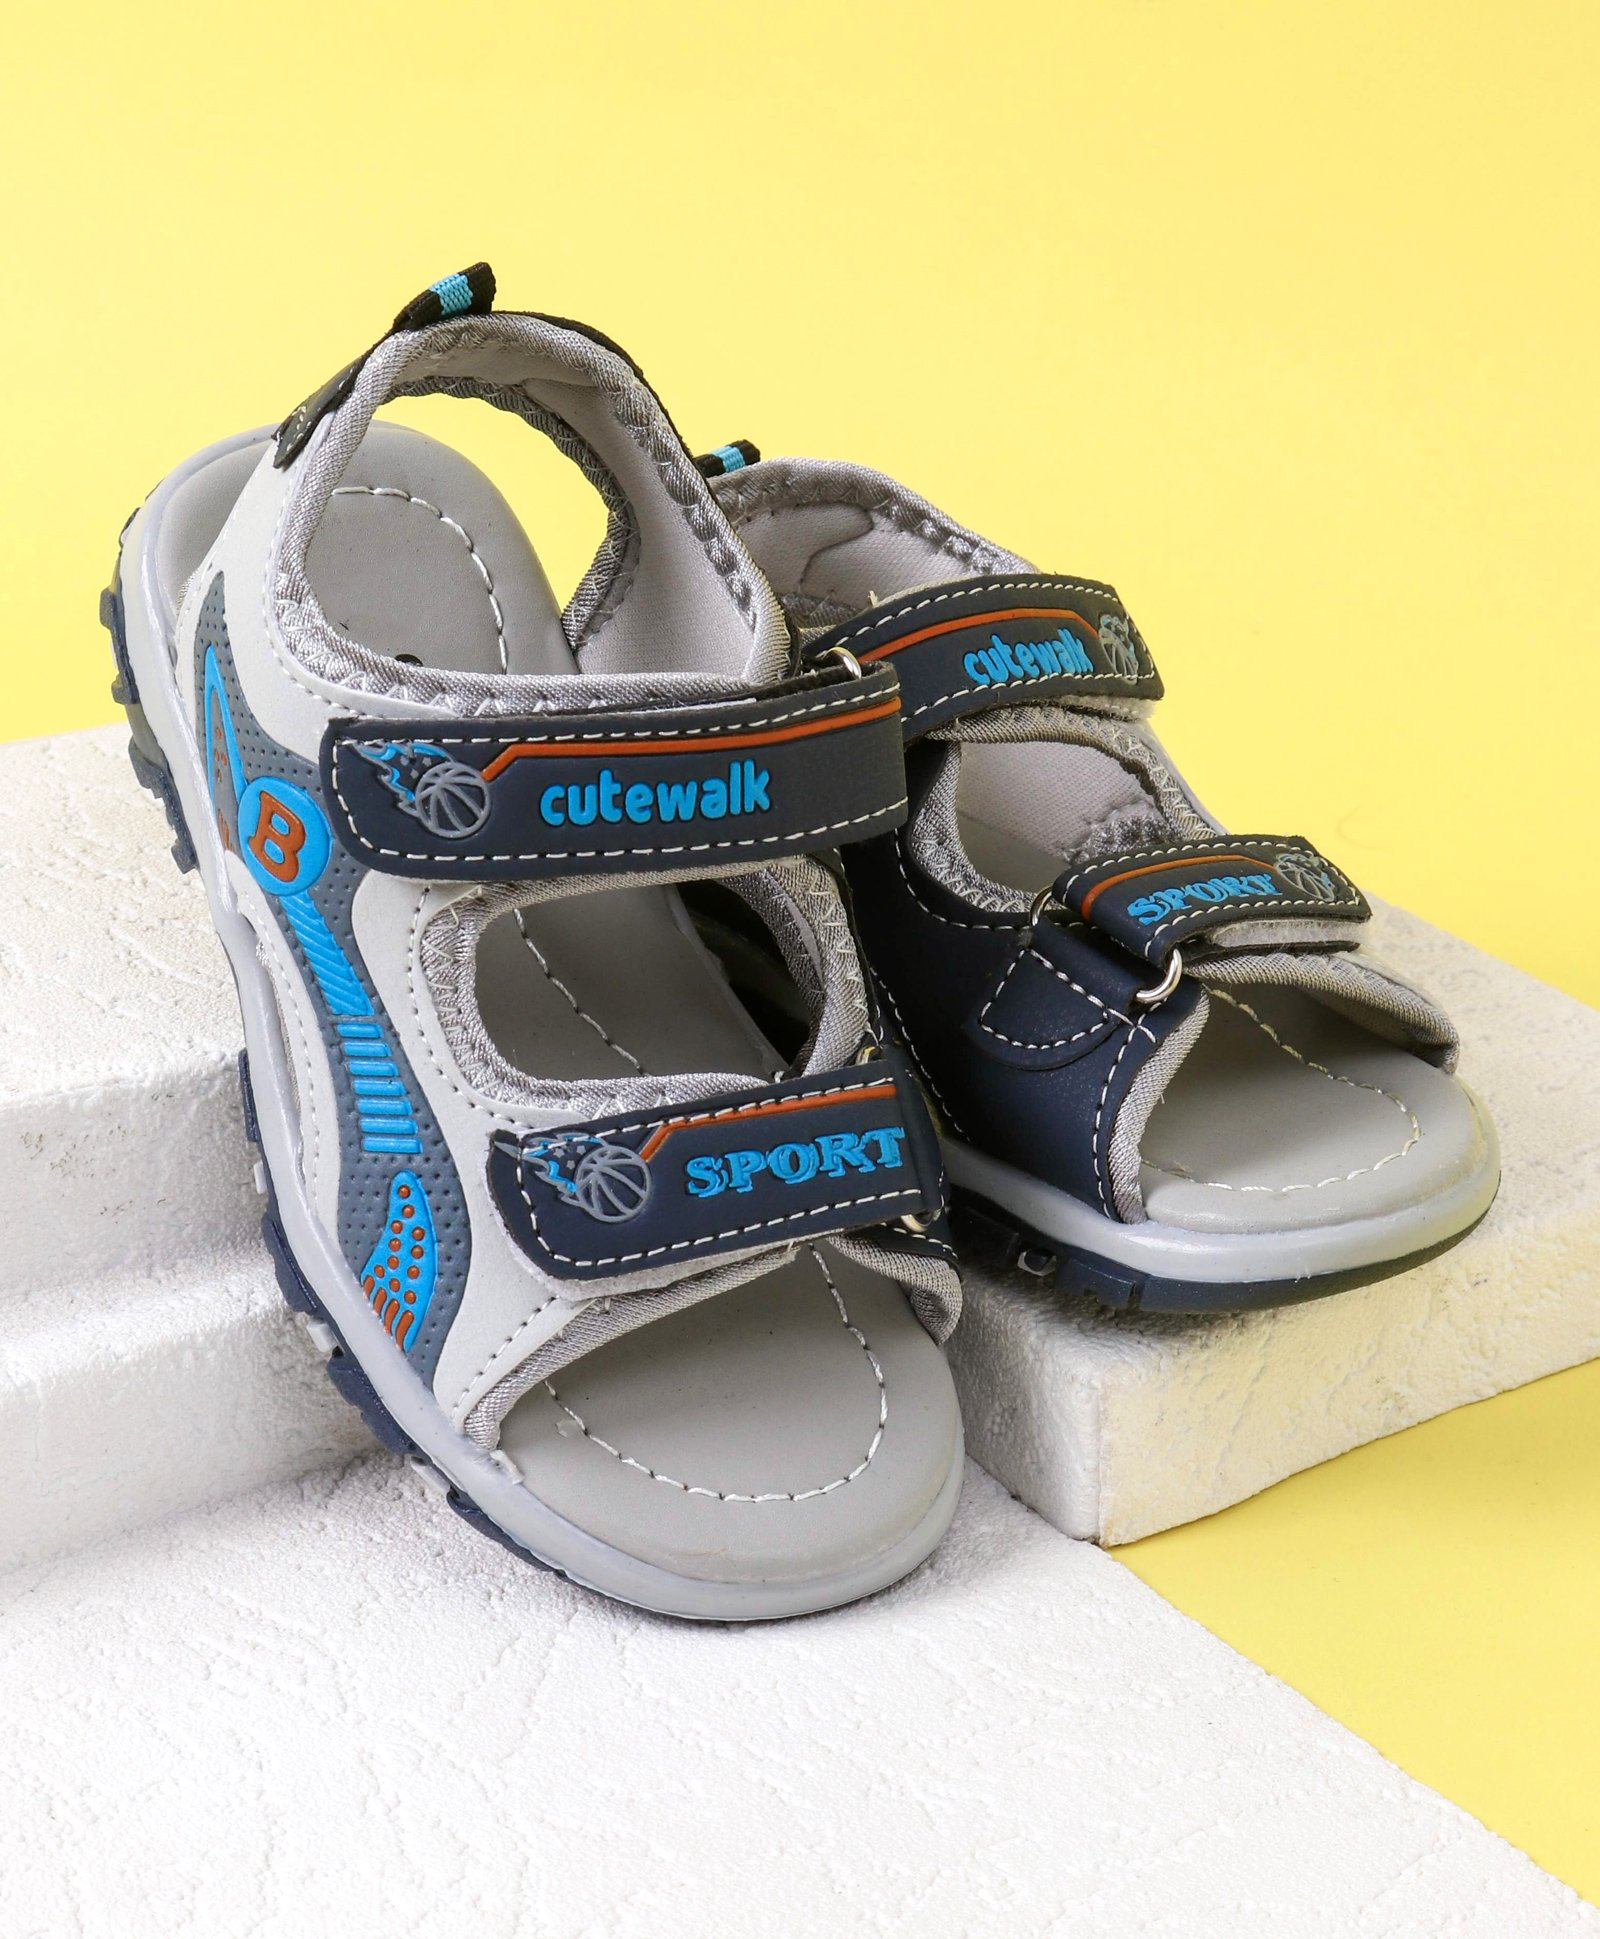 ae20df1cae90fa Buy Cute Walk by Babyhug Sandals Sport Print Grey Sky Blue for ...